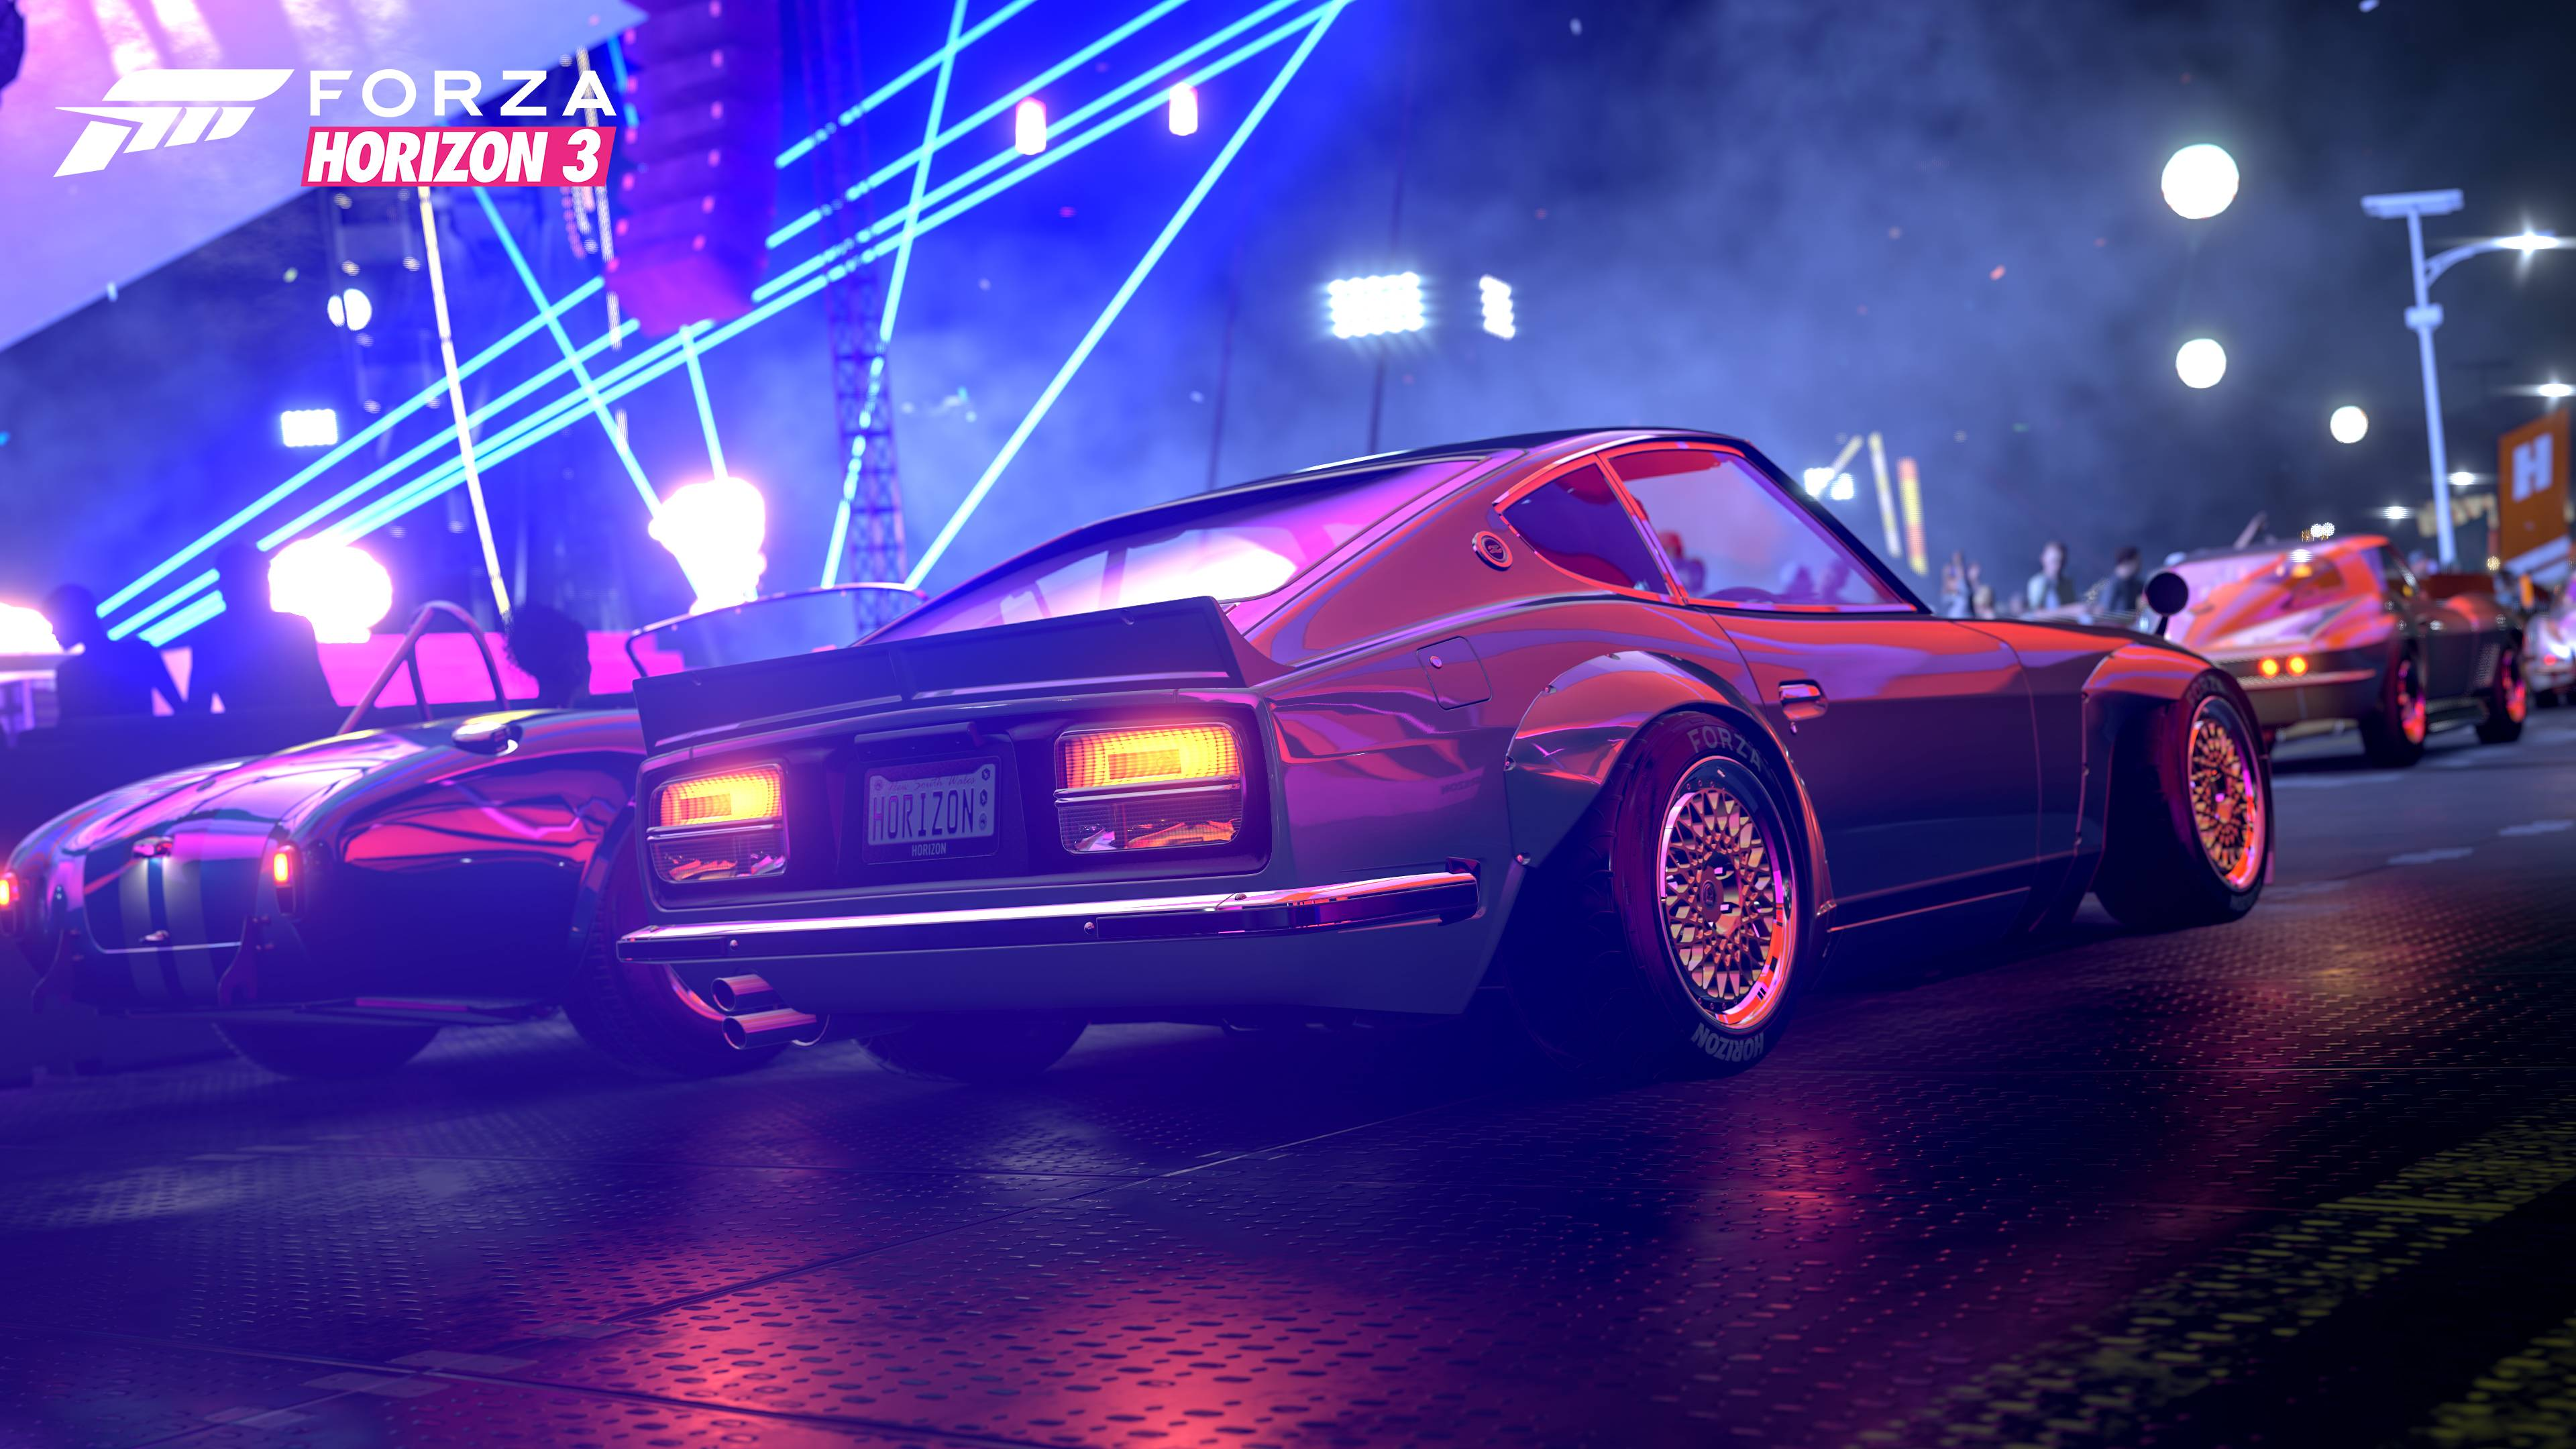 forza horizon ford mustang colorful lights 4k 1537691023 - Forza Horizon Ford Mustang Colorful Lights 4k - hd-wallpapers, games wallpapers, forza wallpapers, forza horizon 3 wallpapers, ford mustang wallpapers, 4k-wallpapers, 2018 games wallpapers